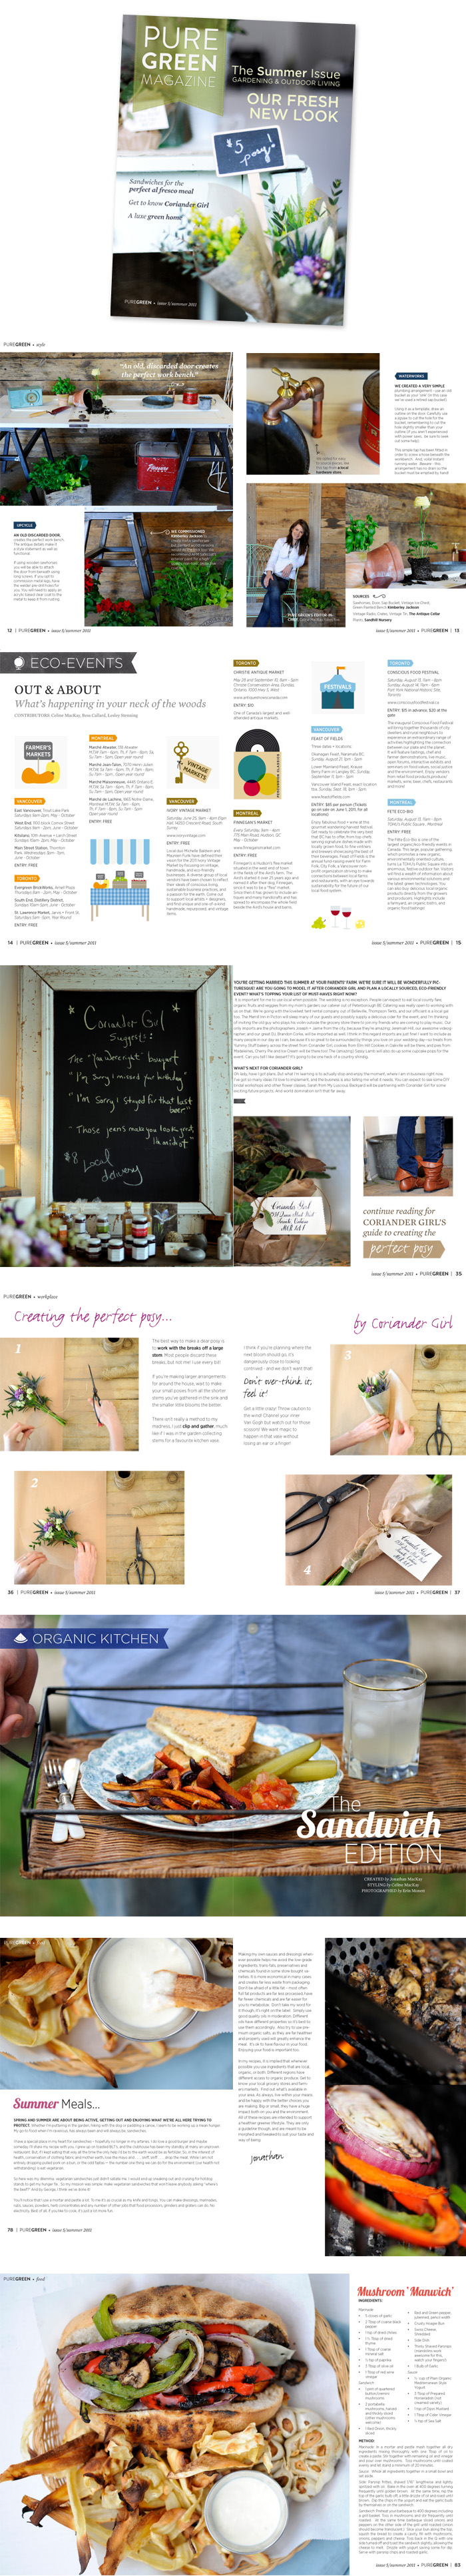 pure_green_magazine Kopie